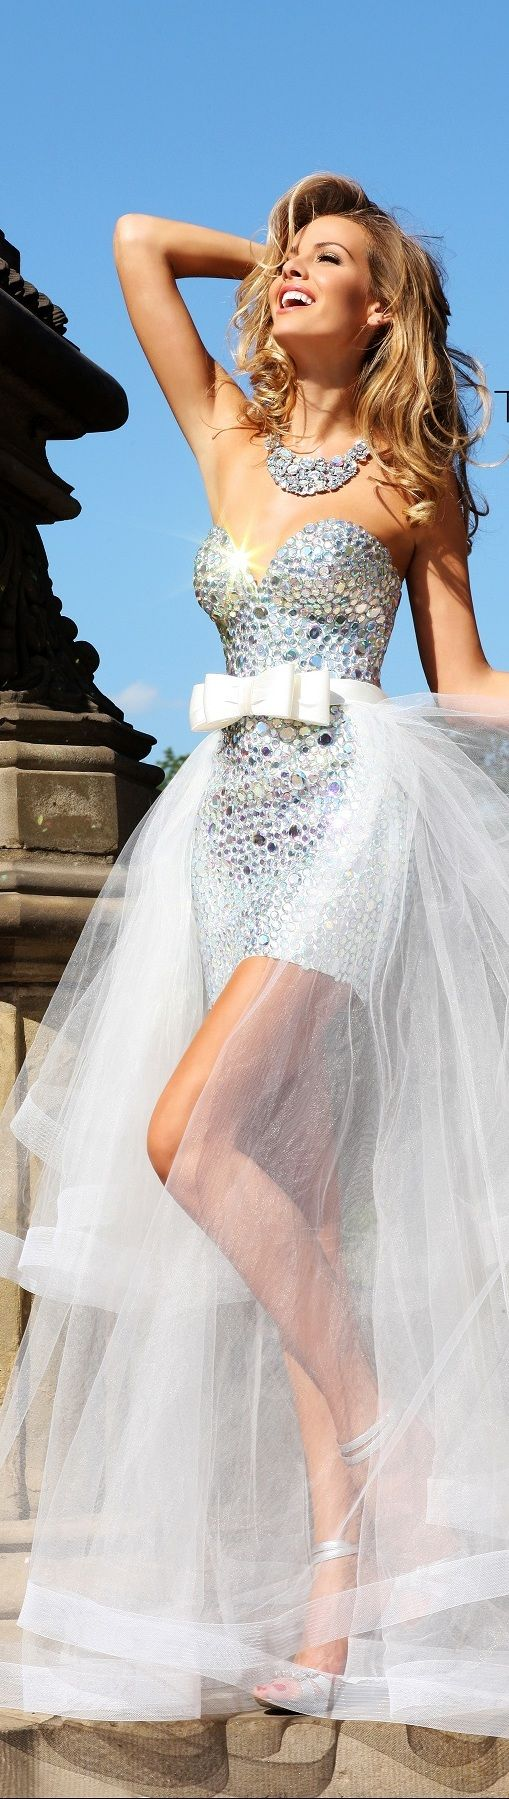 Tarik ediz haute couture cinderella beautiful uc pinterest